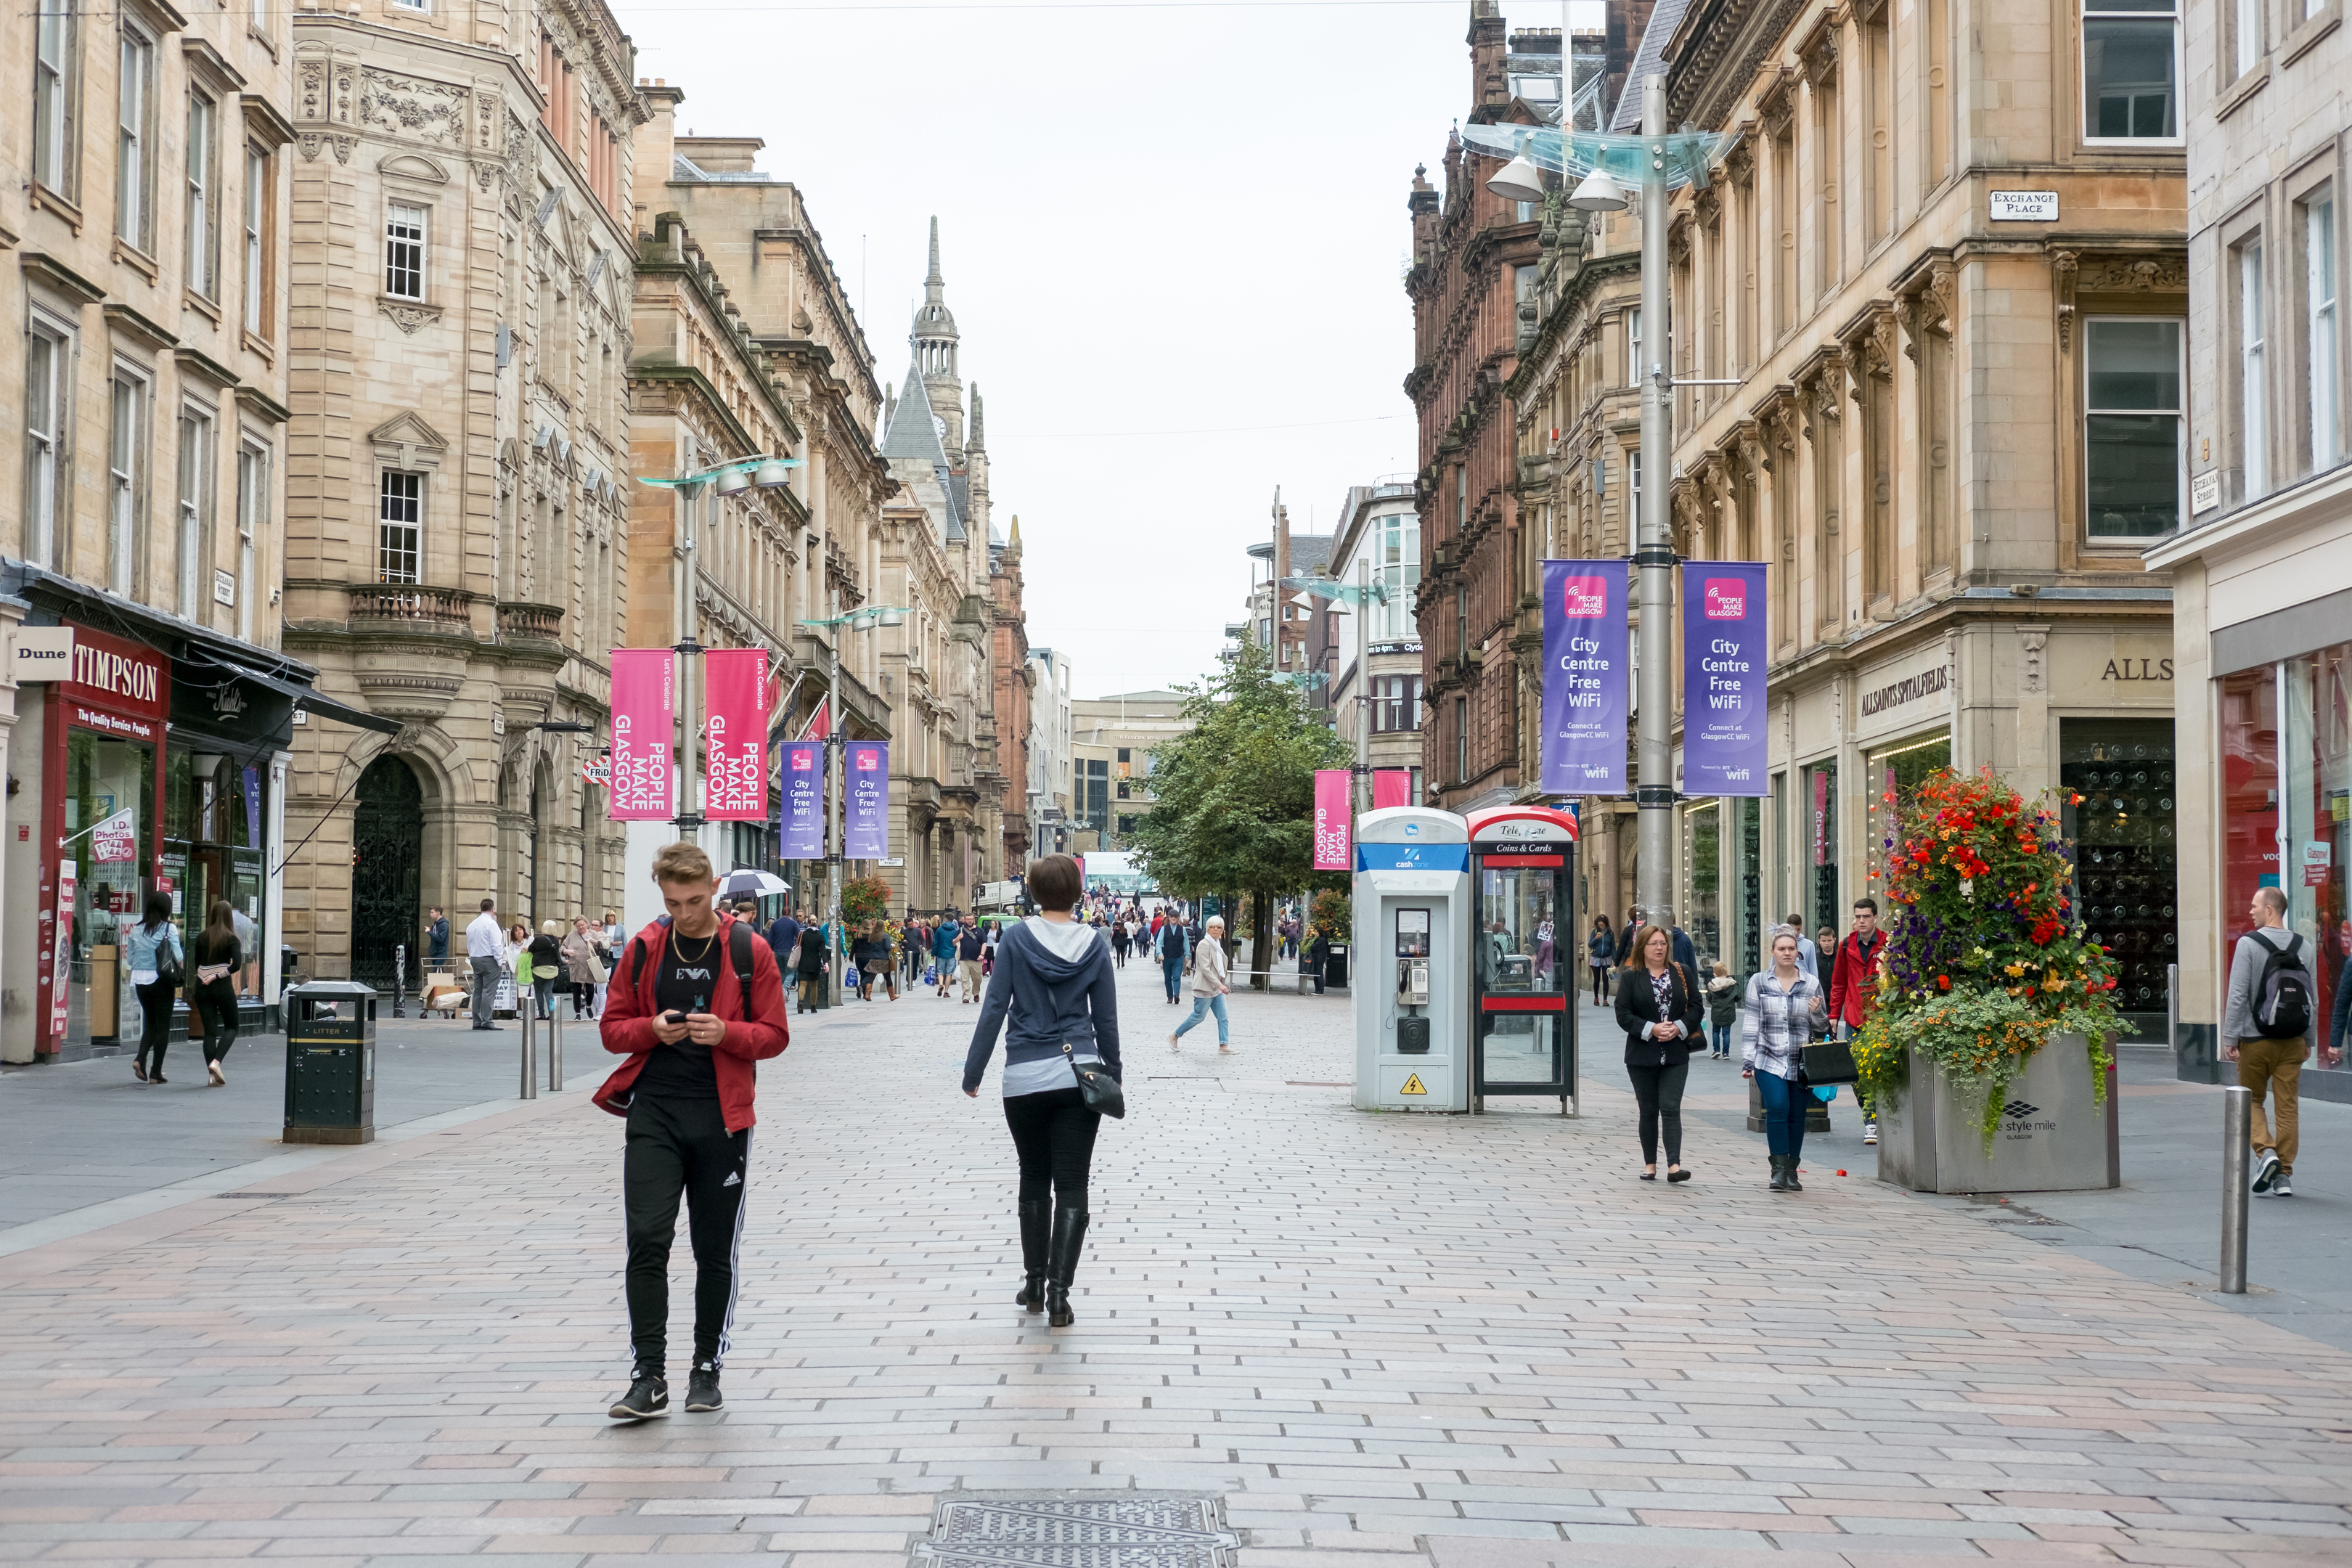 Fashion sales slumped by 3.5% year-on-year last month, despite the onset of sale season, according to the BDO High Street Sales Tracker (iStock)